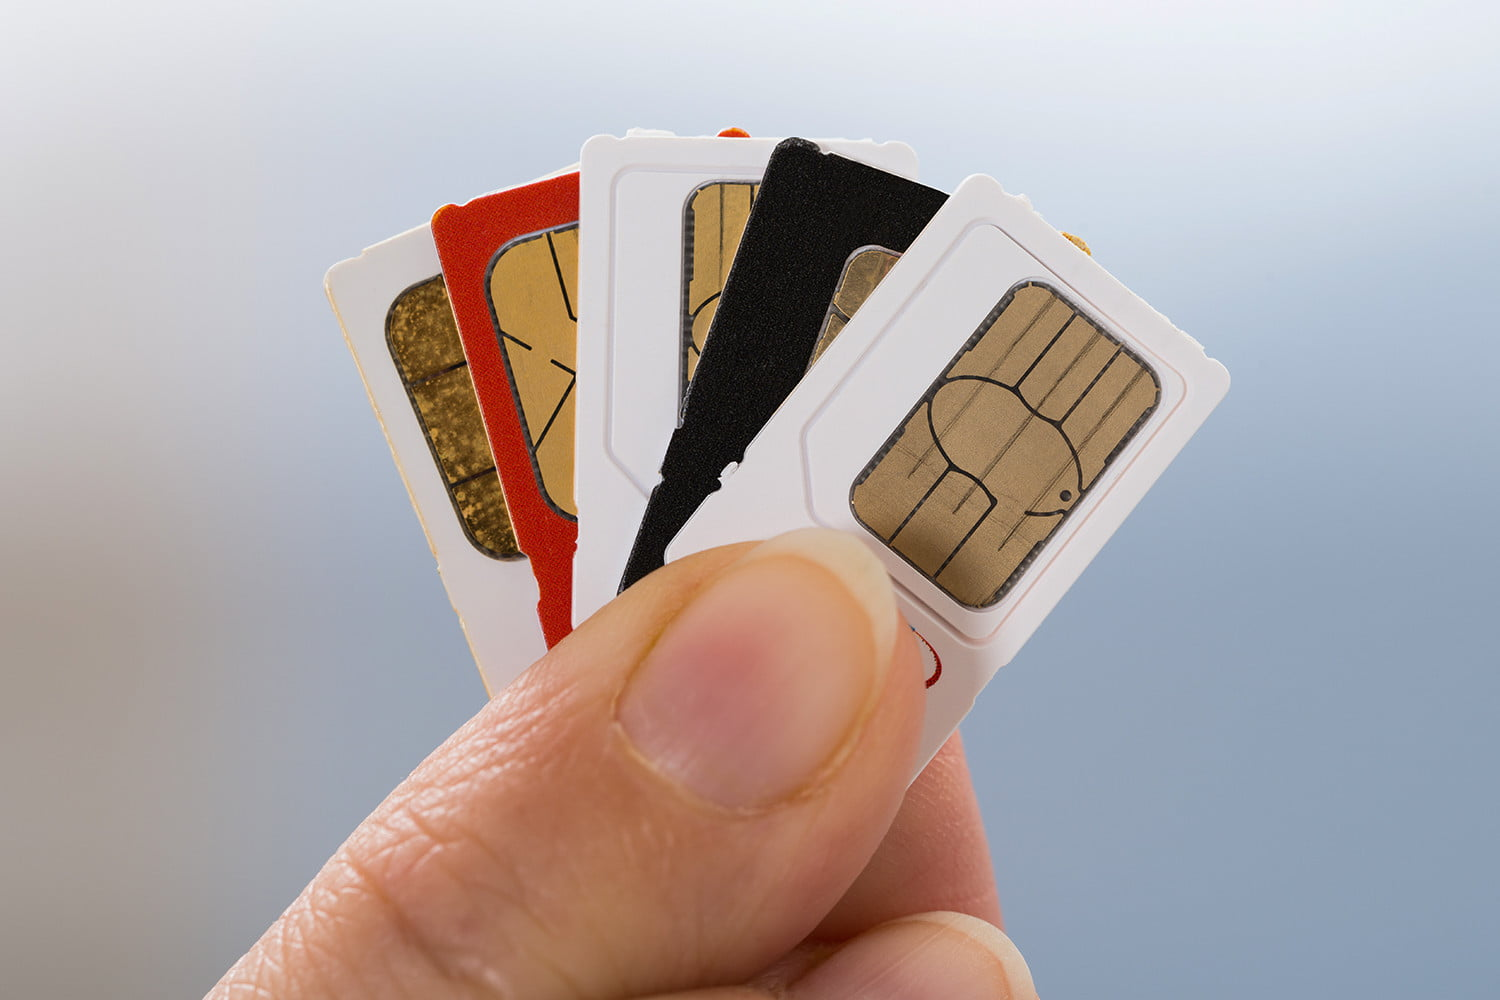 SIM Swap Fraud: What it is and How to Protect Yourself